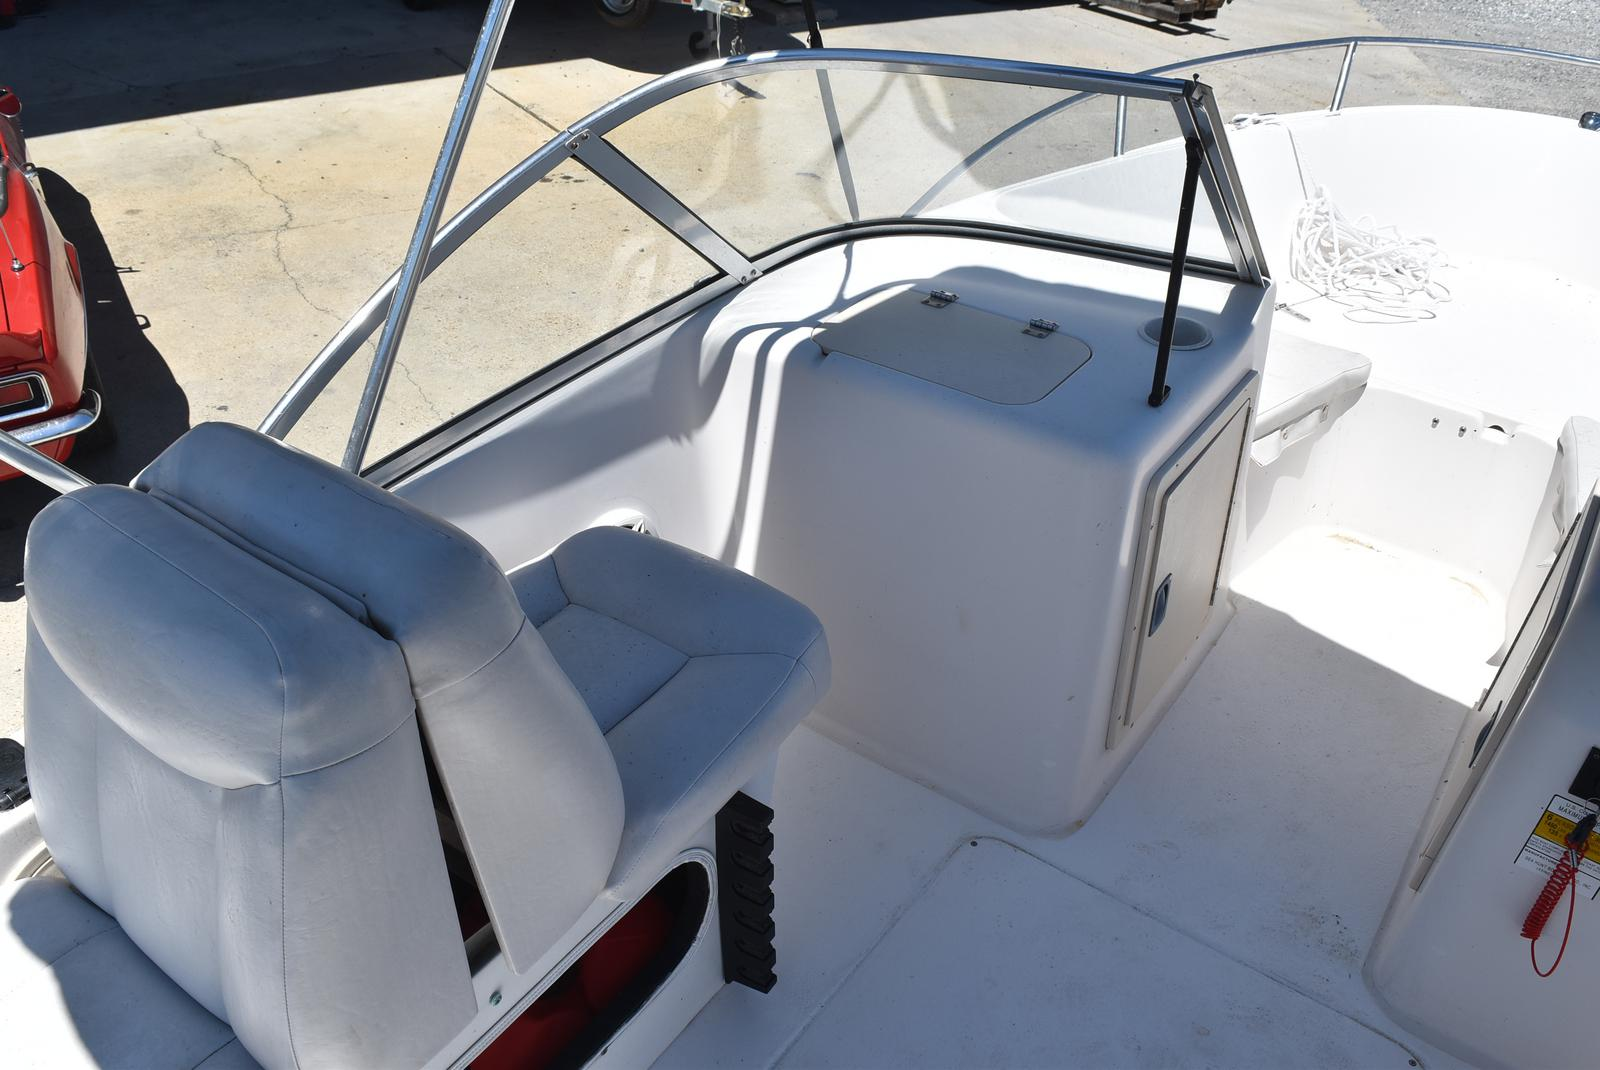 1998 Sea Hunt boat for sale, model of the boat is 172 ESCAPE & Image # 20 of 20